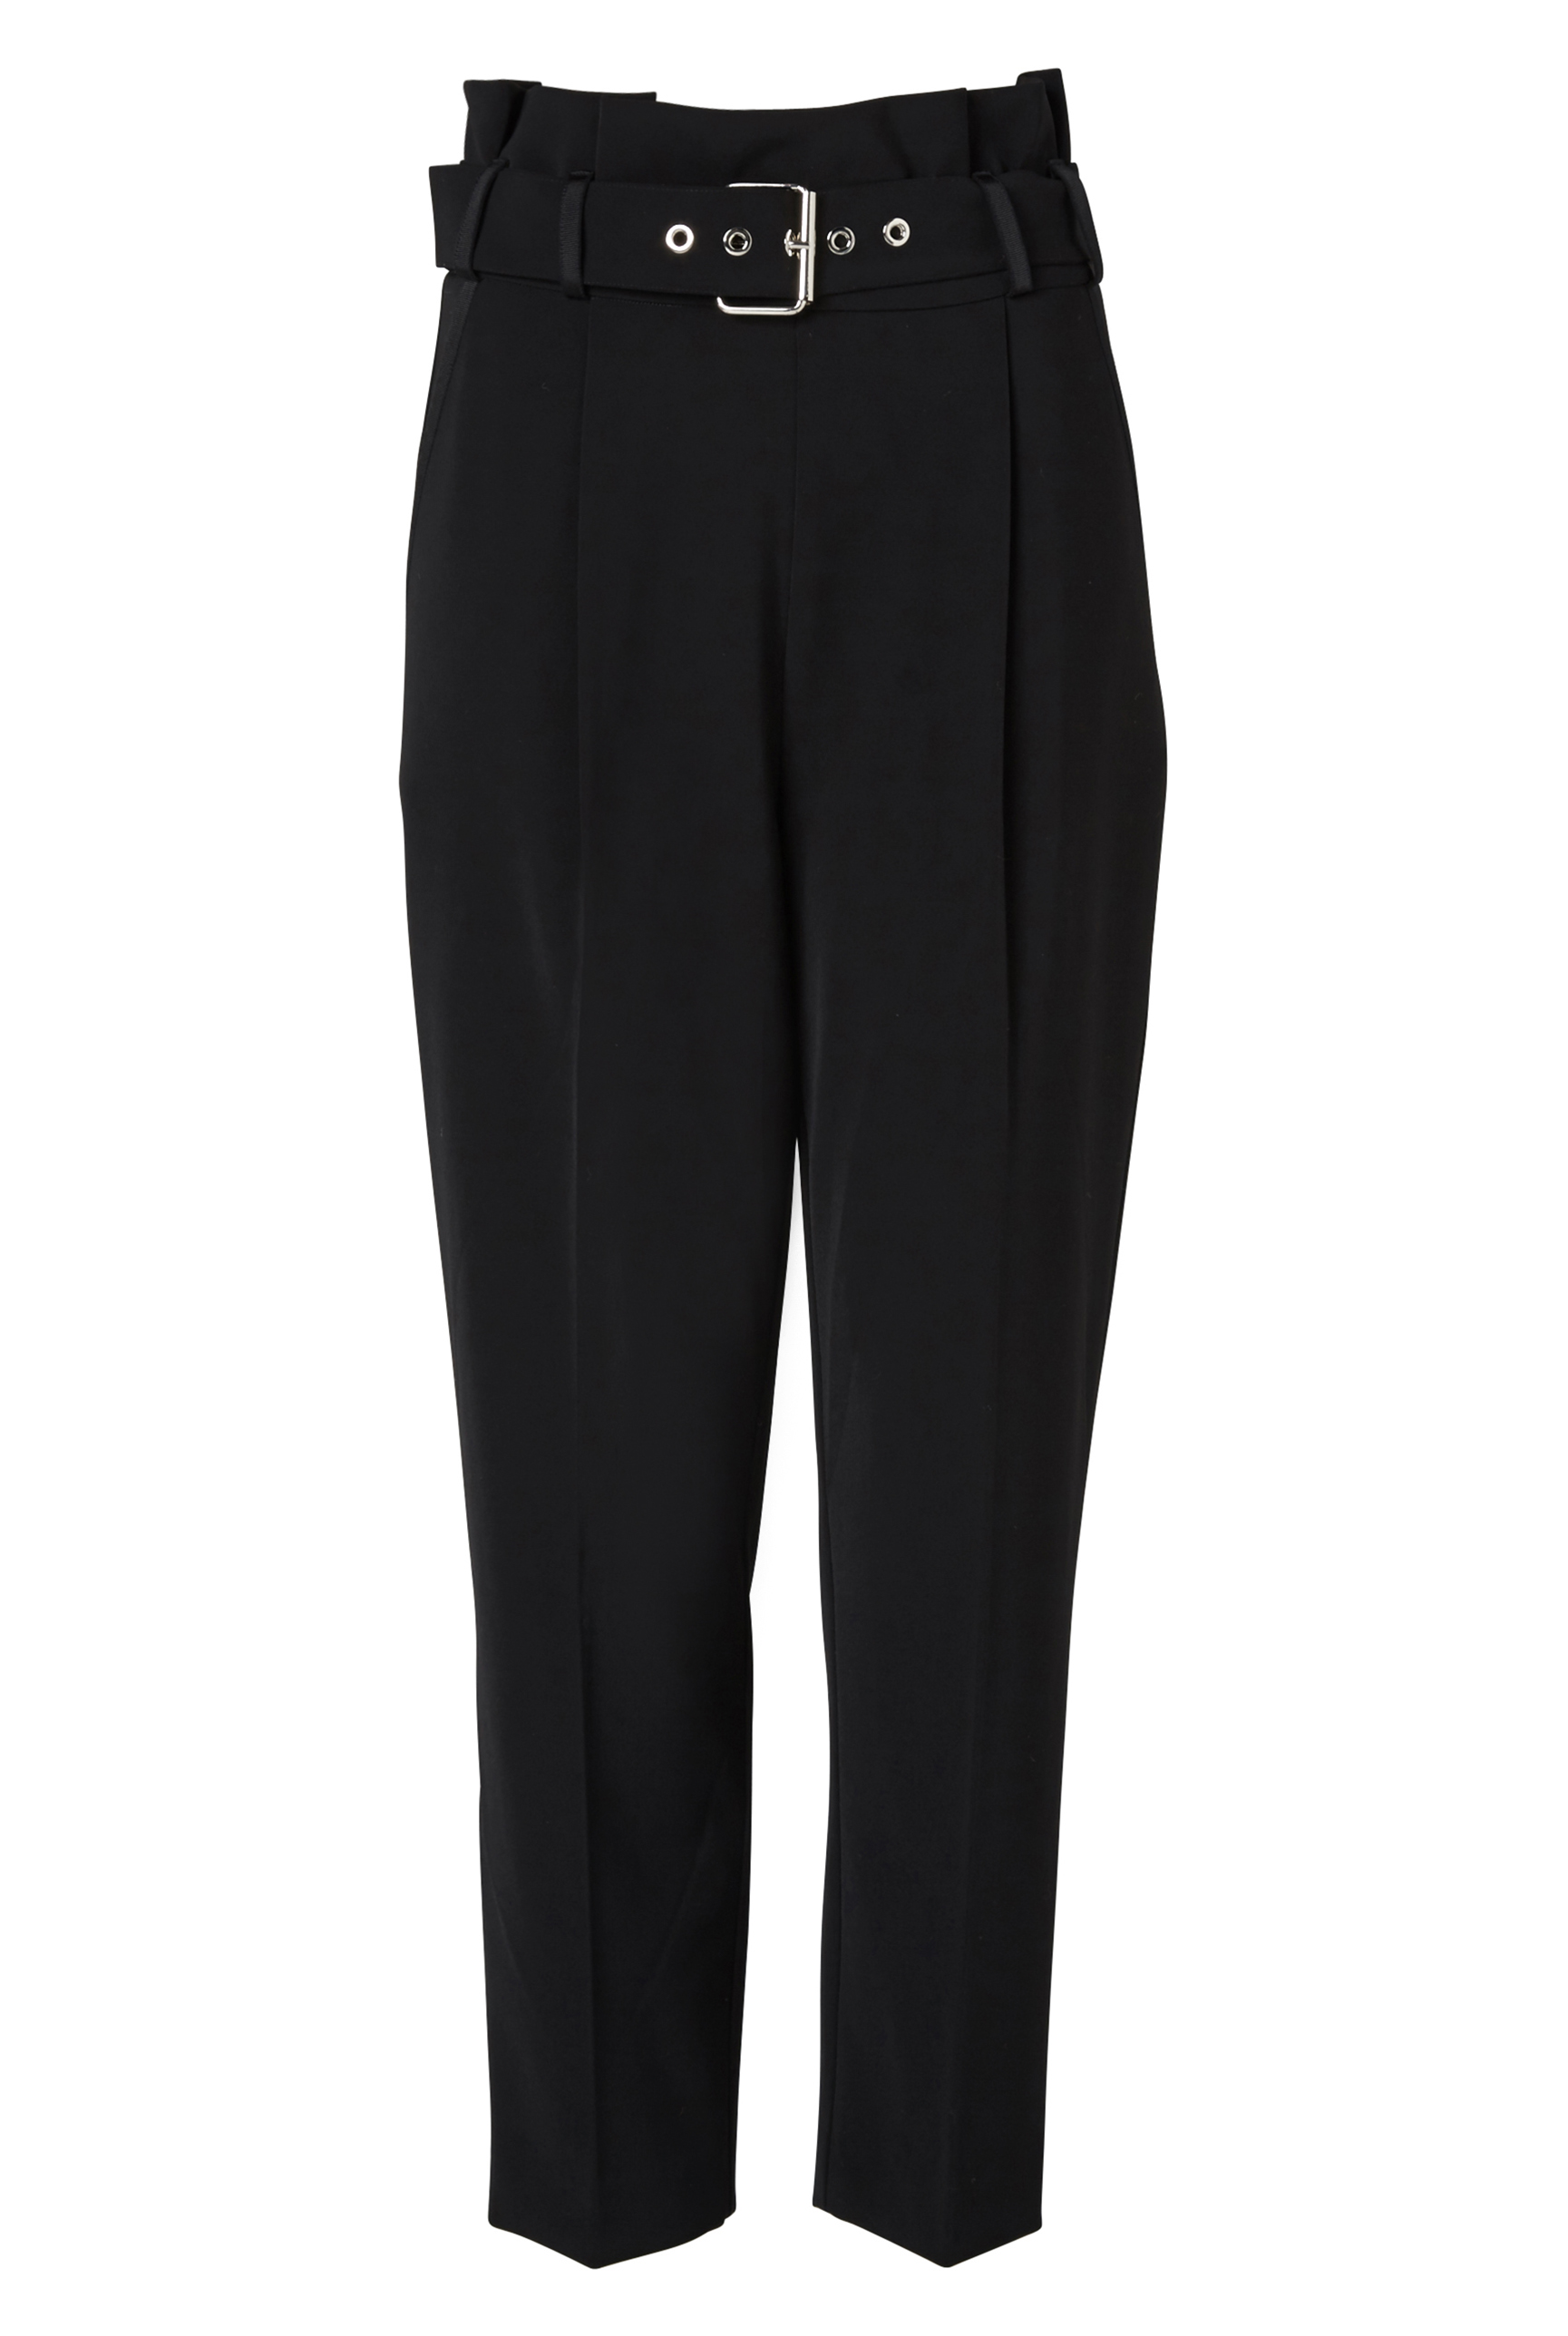 60190064_Witchery First Edition Aia Pant, RRP$209.90